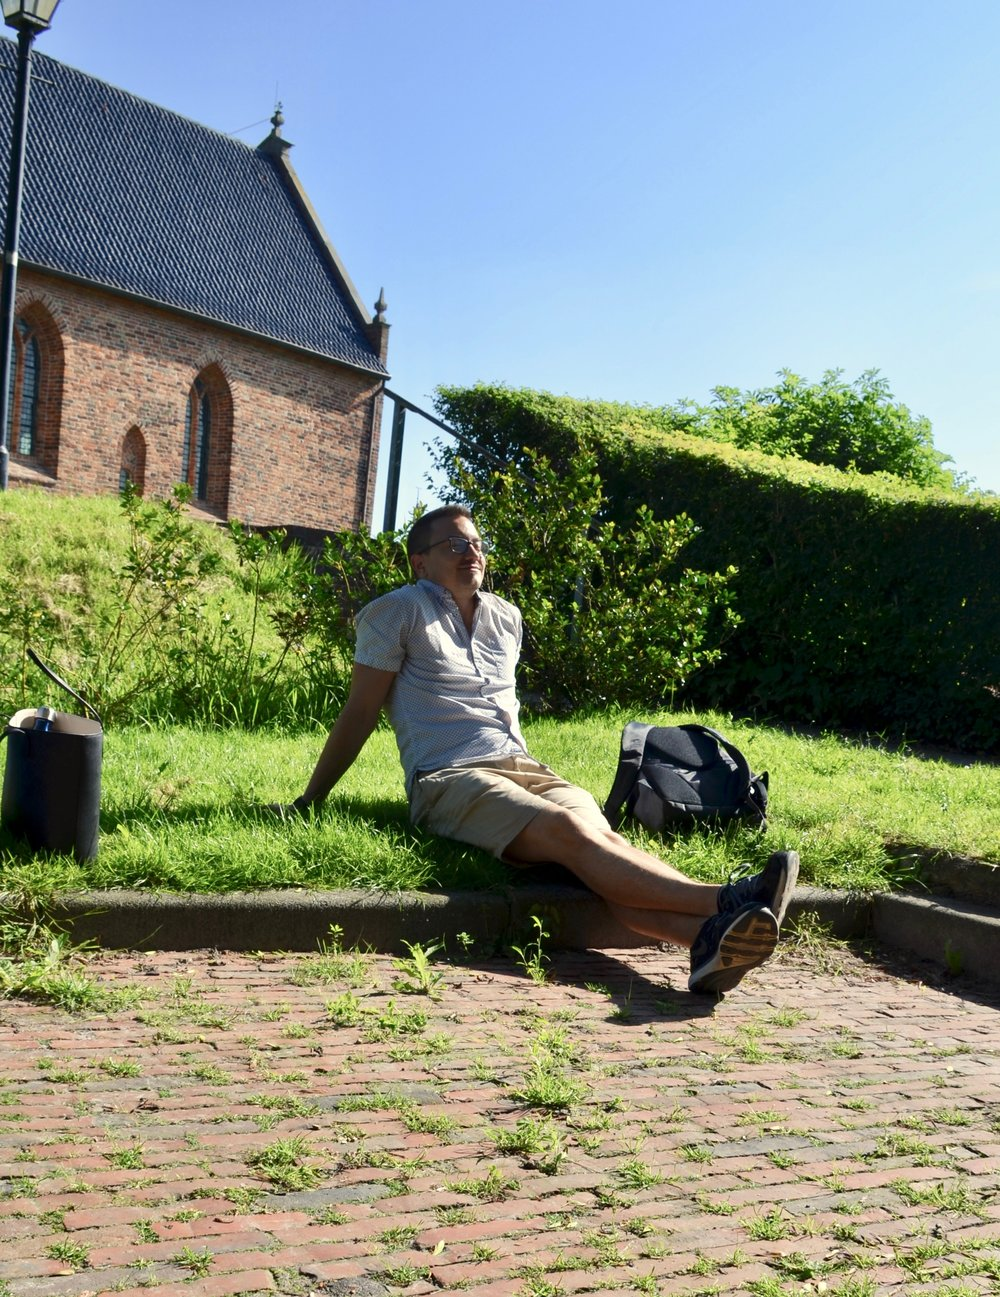 Corey De Tar outside the church in Kantens, Holland.